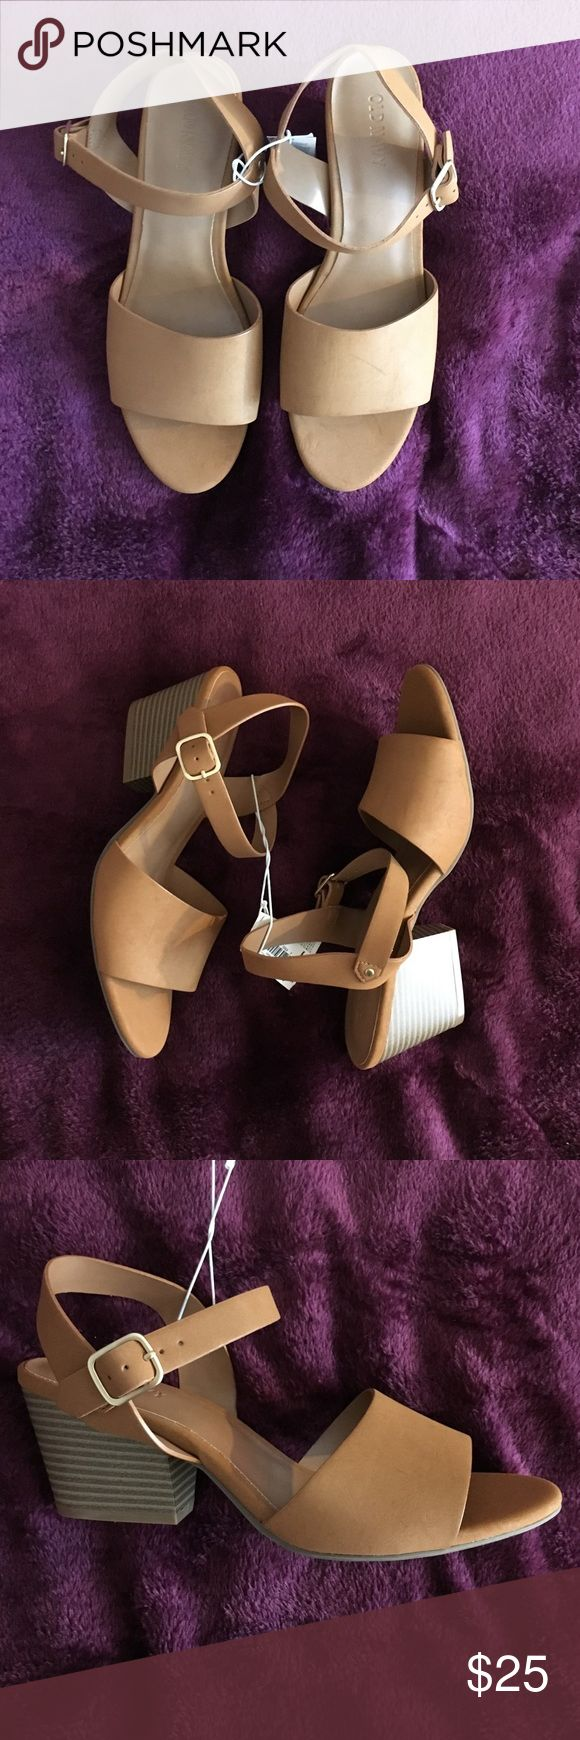 NWT Tan Old Navy heeled sandals NWT Size 7 tan heeled sandals from Old Navy.  2 3/4 in heel. Old Navy Shoes Wedges